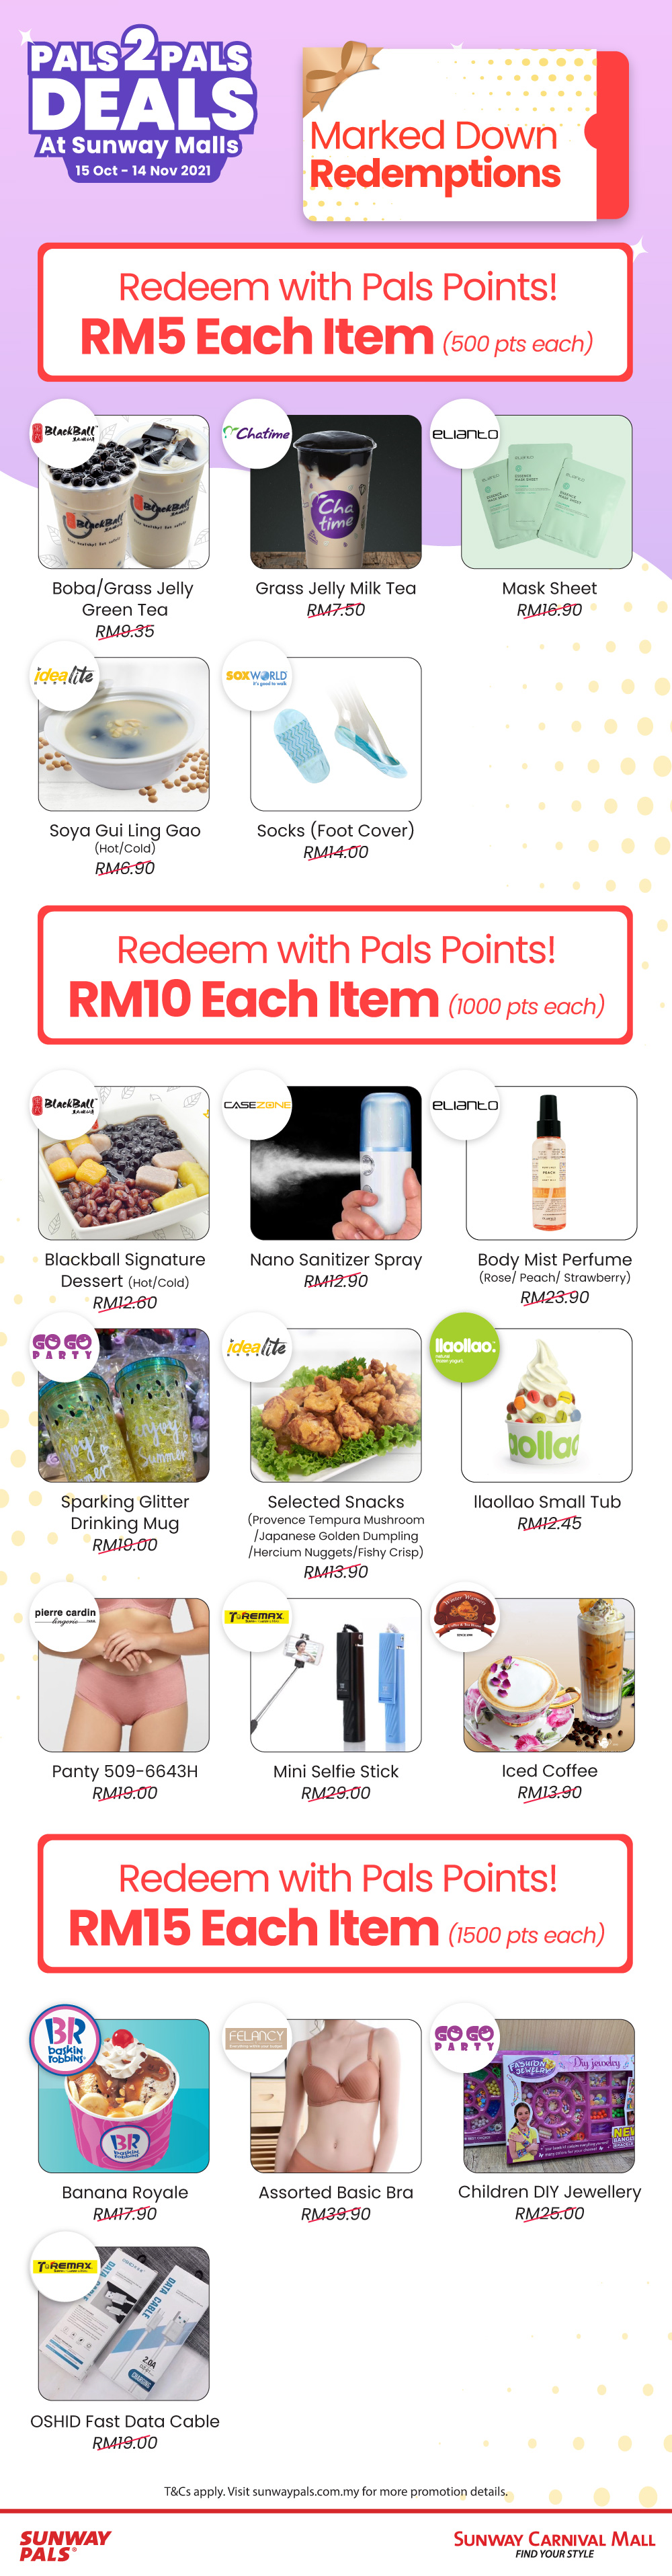 P2PD - Sunway Carinval Mall Marked Down Redemptions From RM5